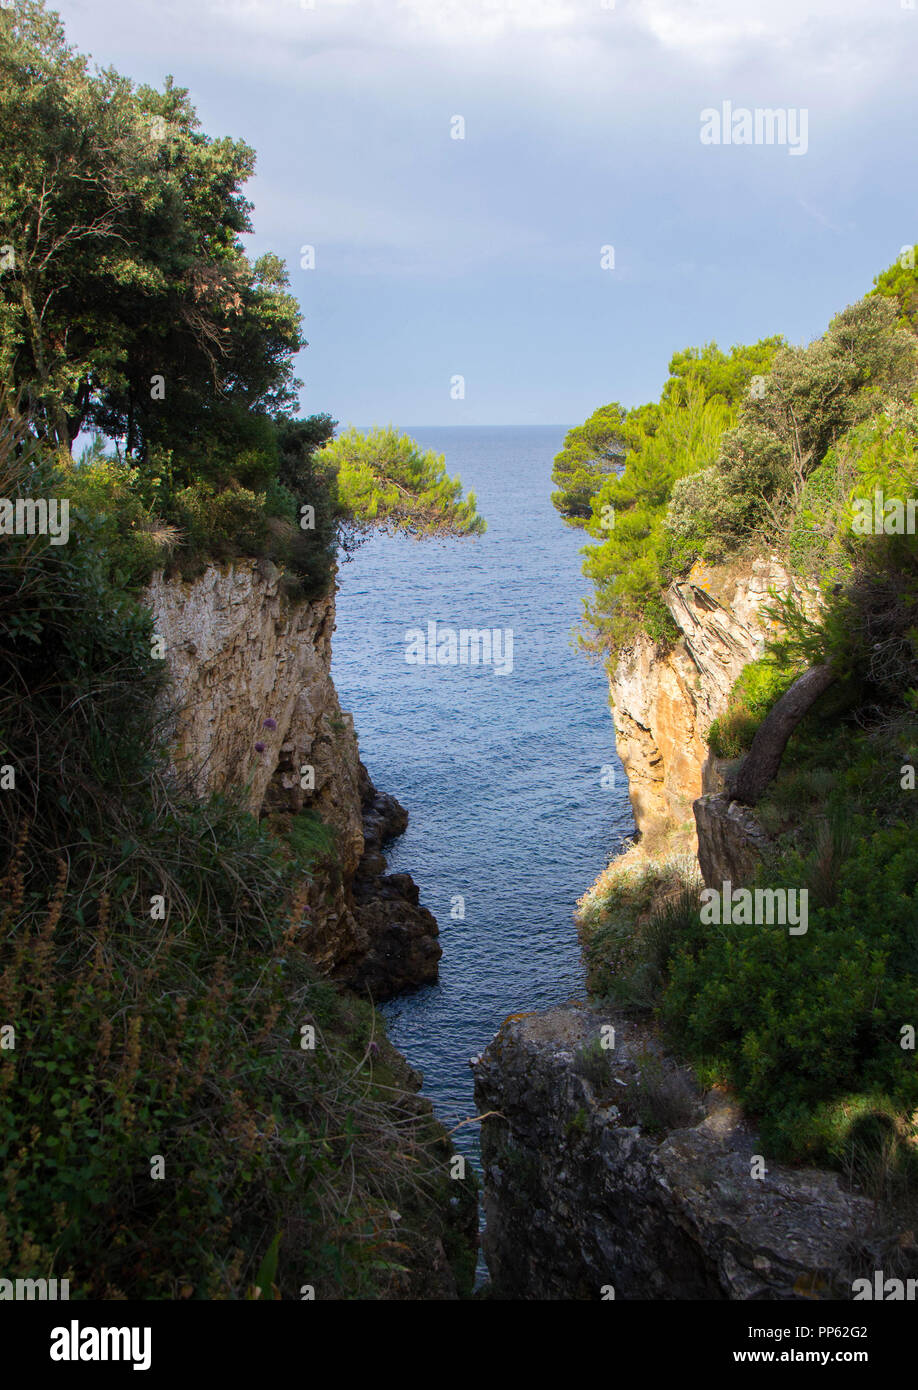 Sea bay on the Adriatic Sea. A cove surrounded by rocks and pine trees - Stock Image